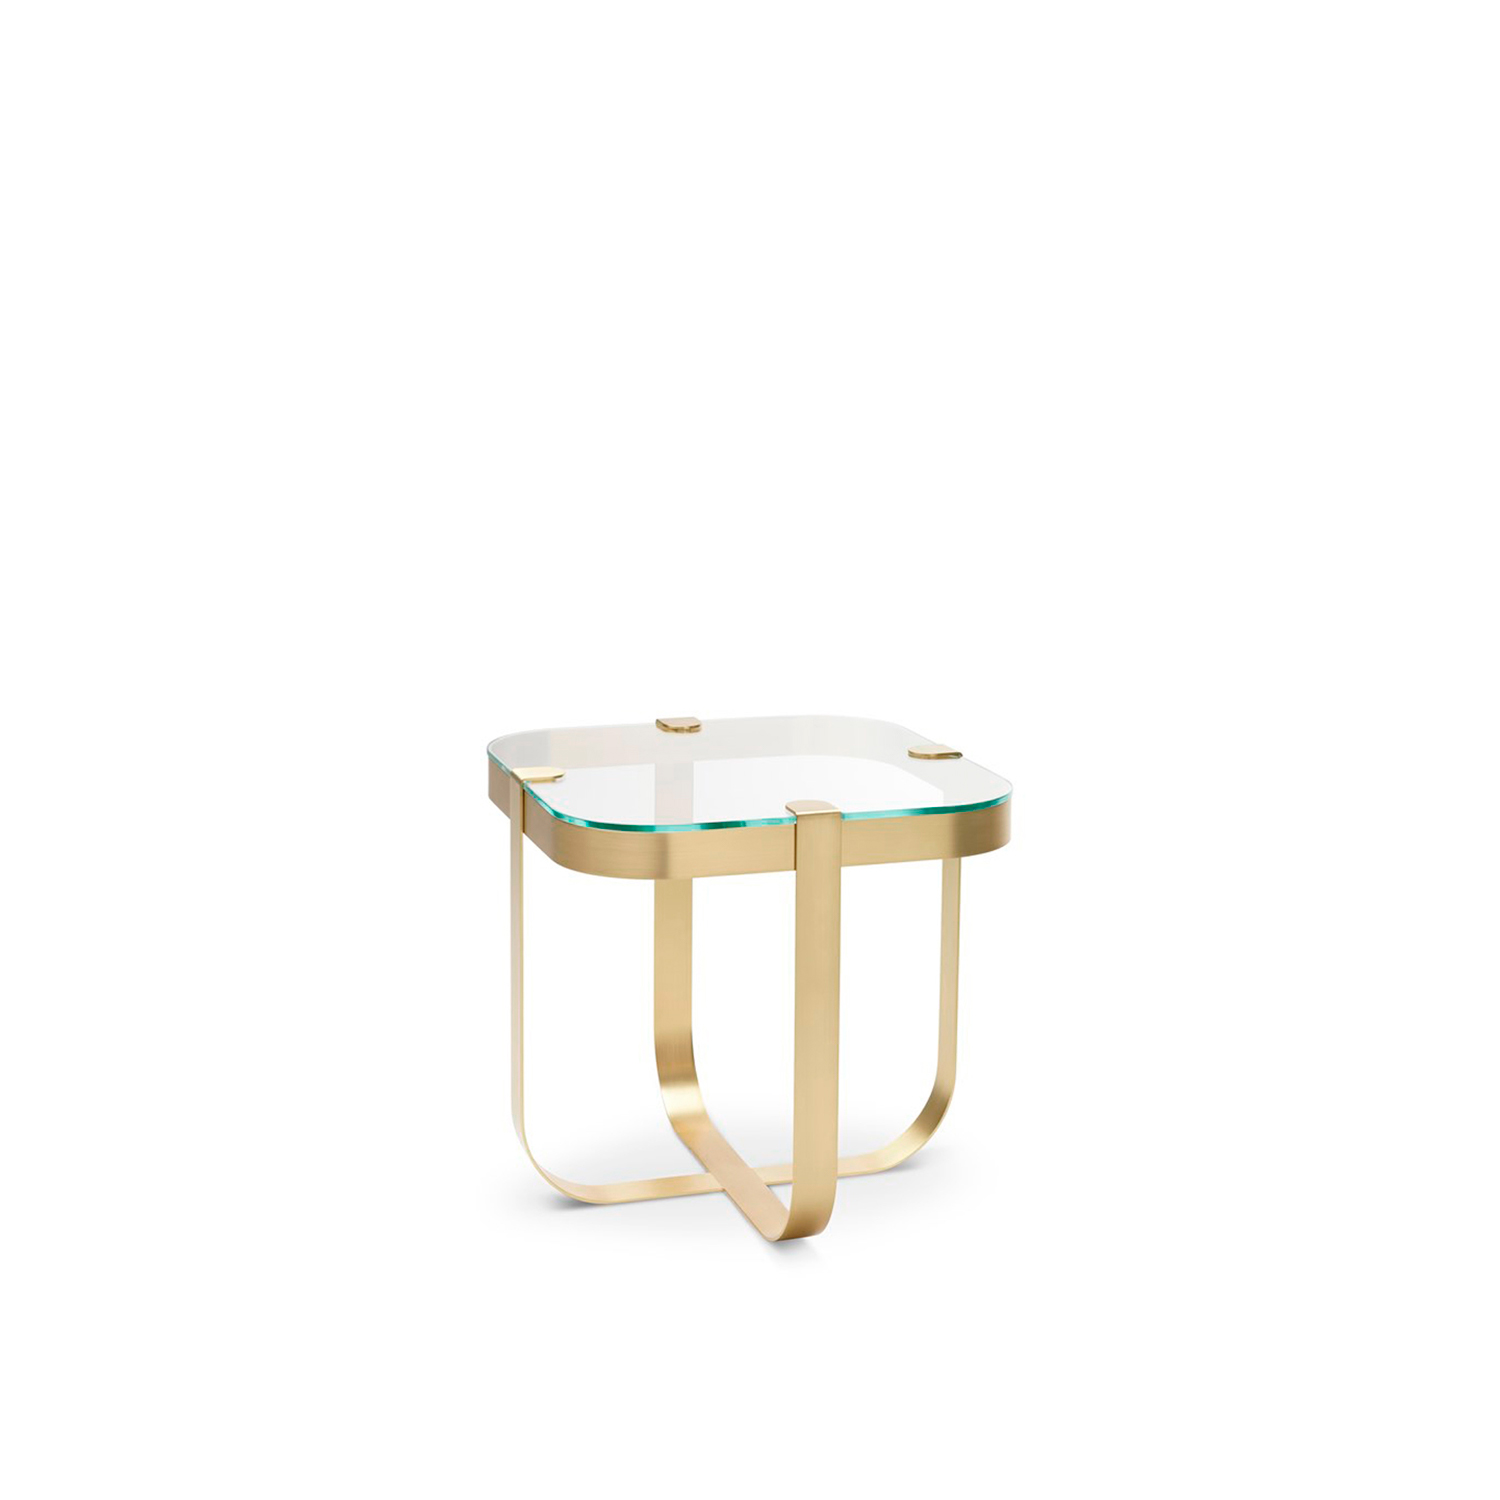 Ring Square Coffee Table - Elegant like jewellery, the Ring coffee tables are inspired by raw cuts of precious stones prior to being mounted into rings. The choice of materials is aimed to emphasise this inspiration behind the collection. The metal base structures are available in copper, brass, steel and nickel, each of which corresponds to a geometric form. Like in jewellery design, the glass tops in transparent or light colours are literally set onto the base structures.  Finishing: Round coffee table polished copper structure - smoked glass top; Square coffee table satin finished brass structure - extra clear glass top; Octagonal coffee table black nickel structure - bronze glass top; Oval coffee table clear chrome structure - sea water glass. | Matter of Stuff